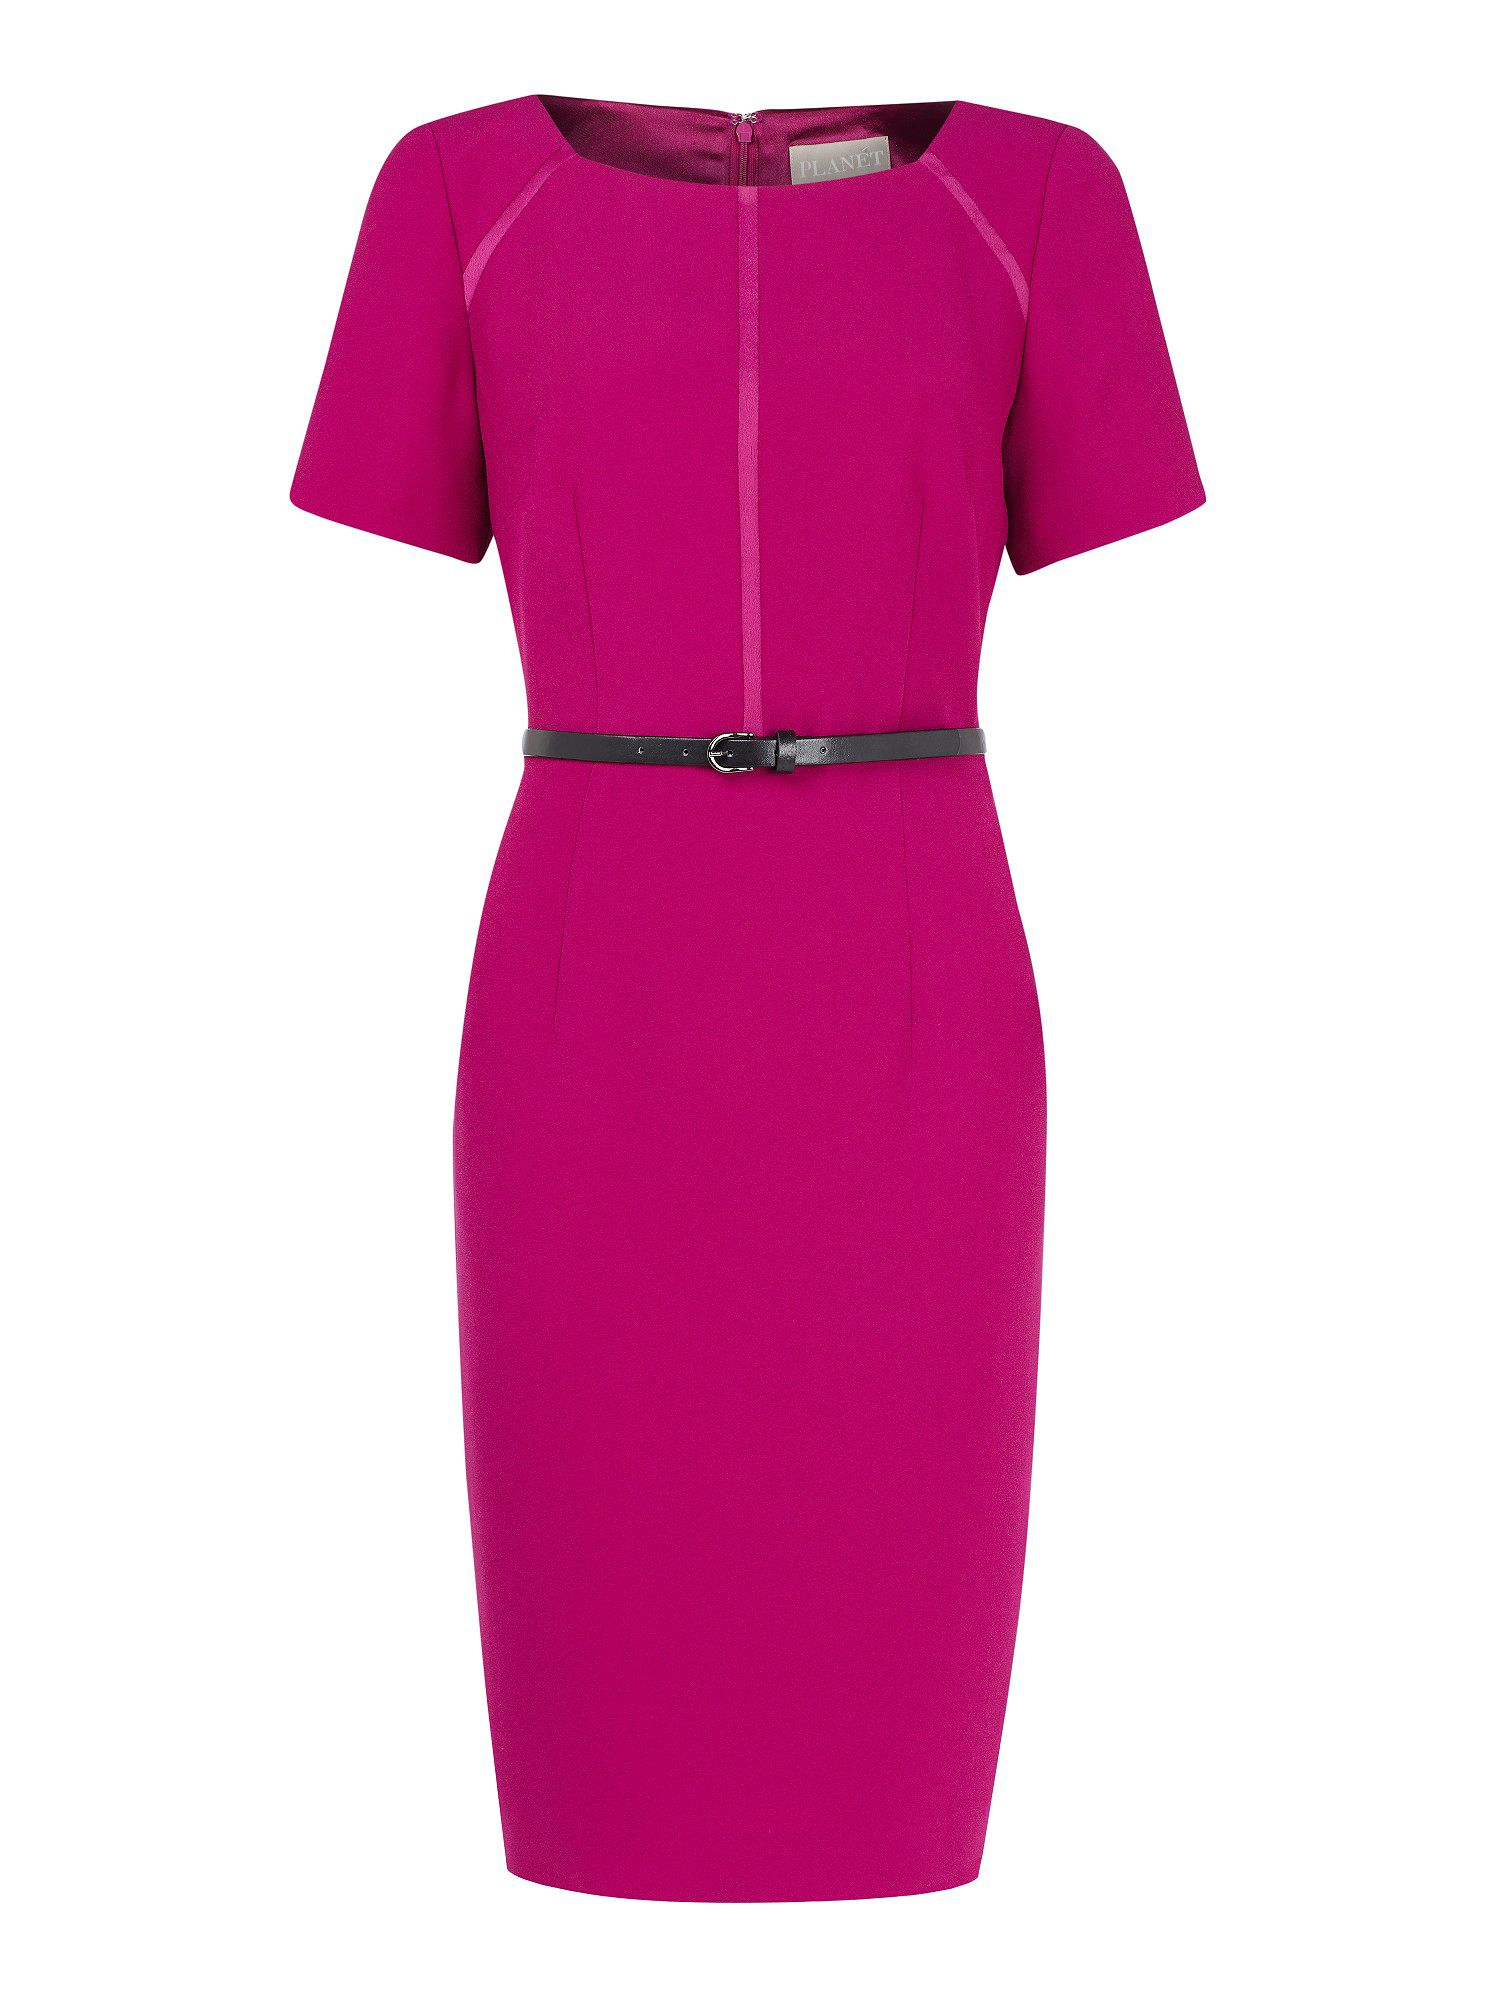 Cerise pink belted shift dress